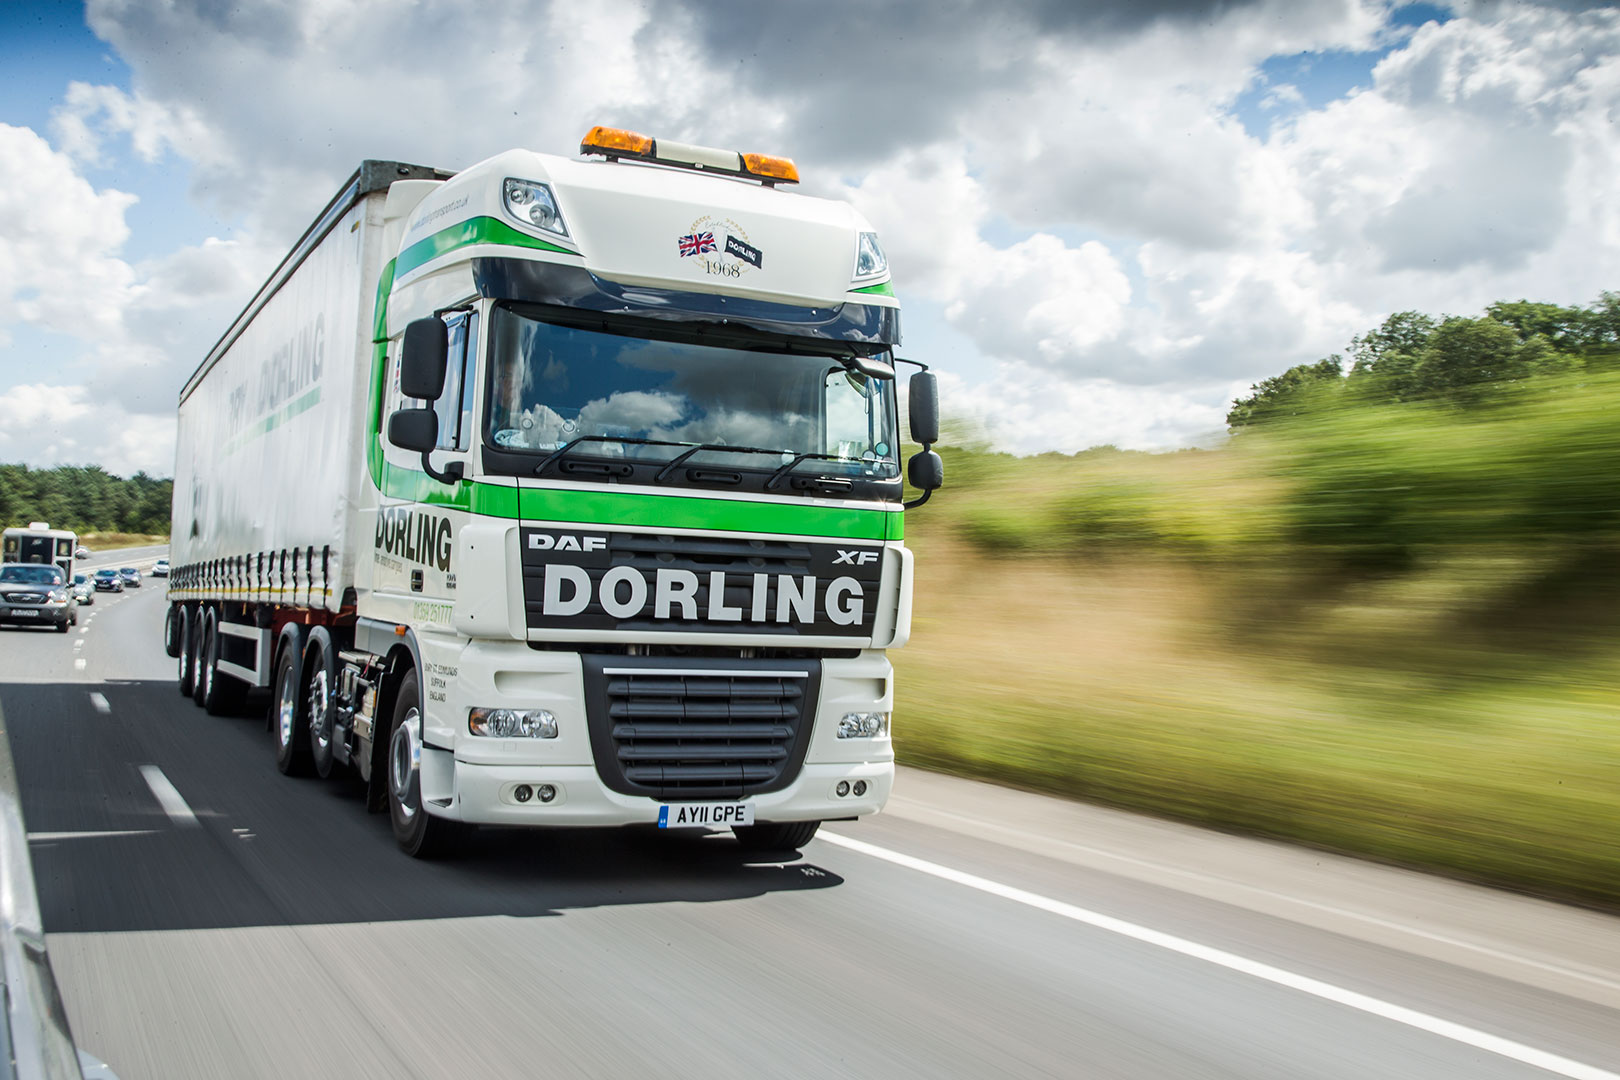 DORLING_TRANSPORT_MOL_TRUCK_MOVING